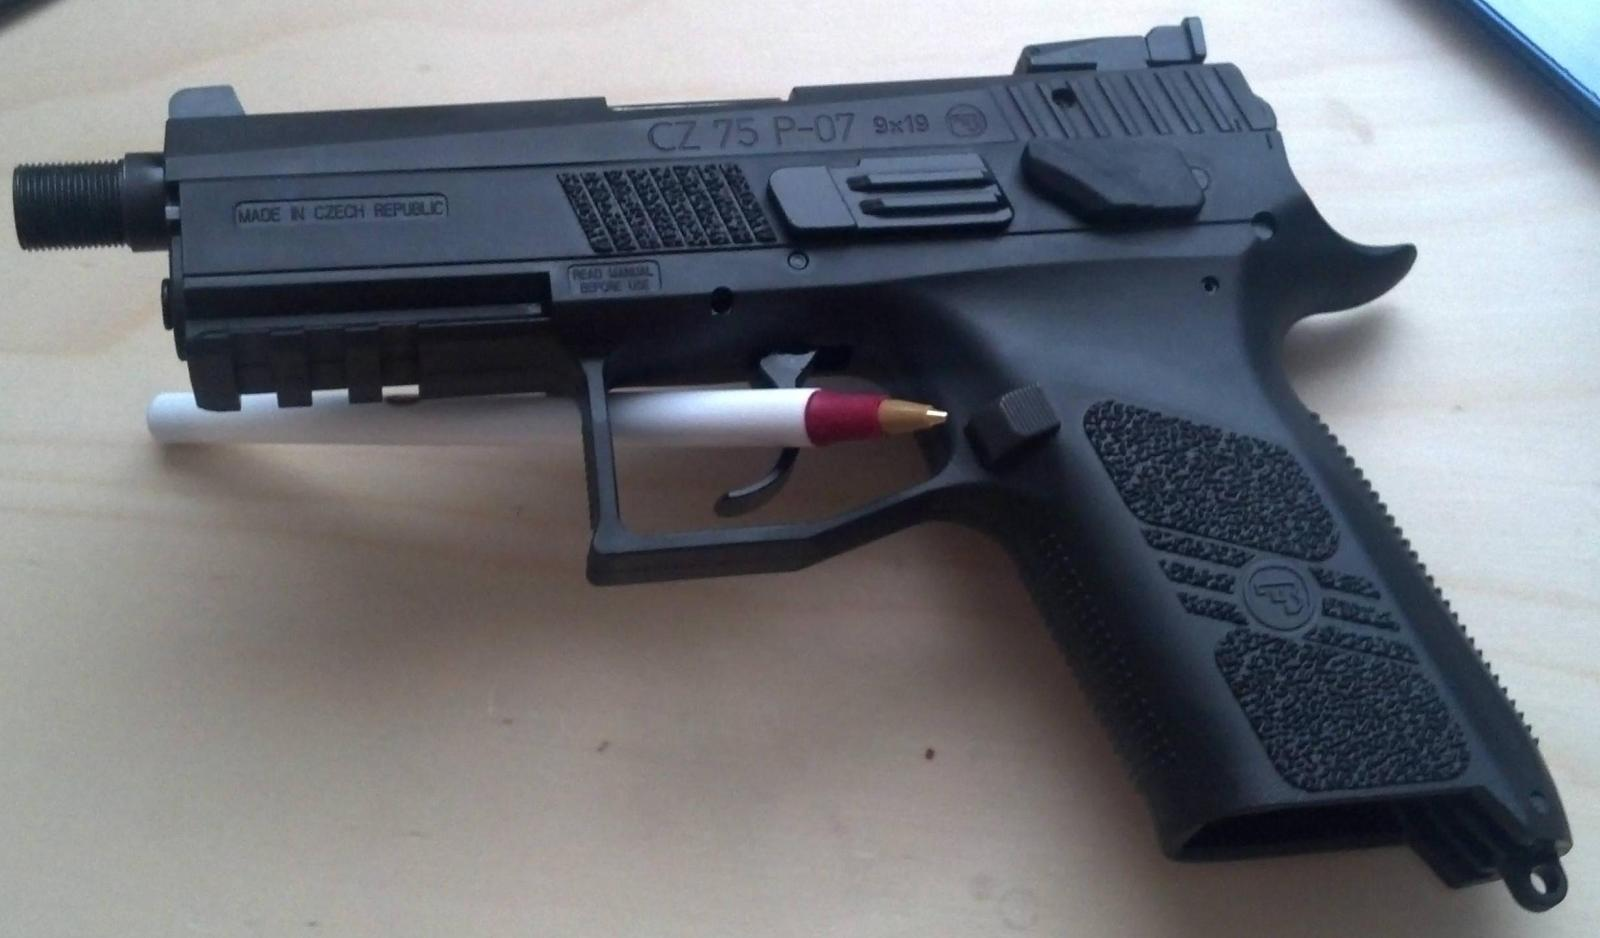 Cz 75 P07 duty with factory threaded barrel | The Outdoors